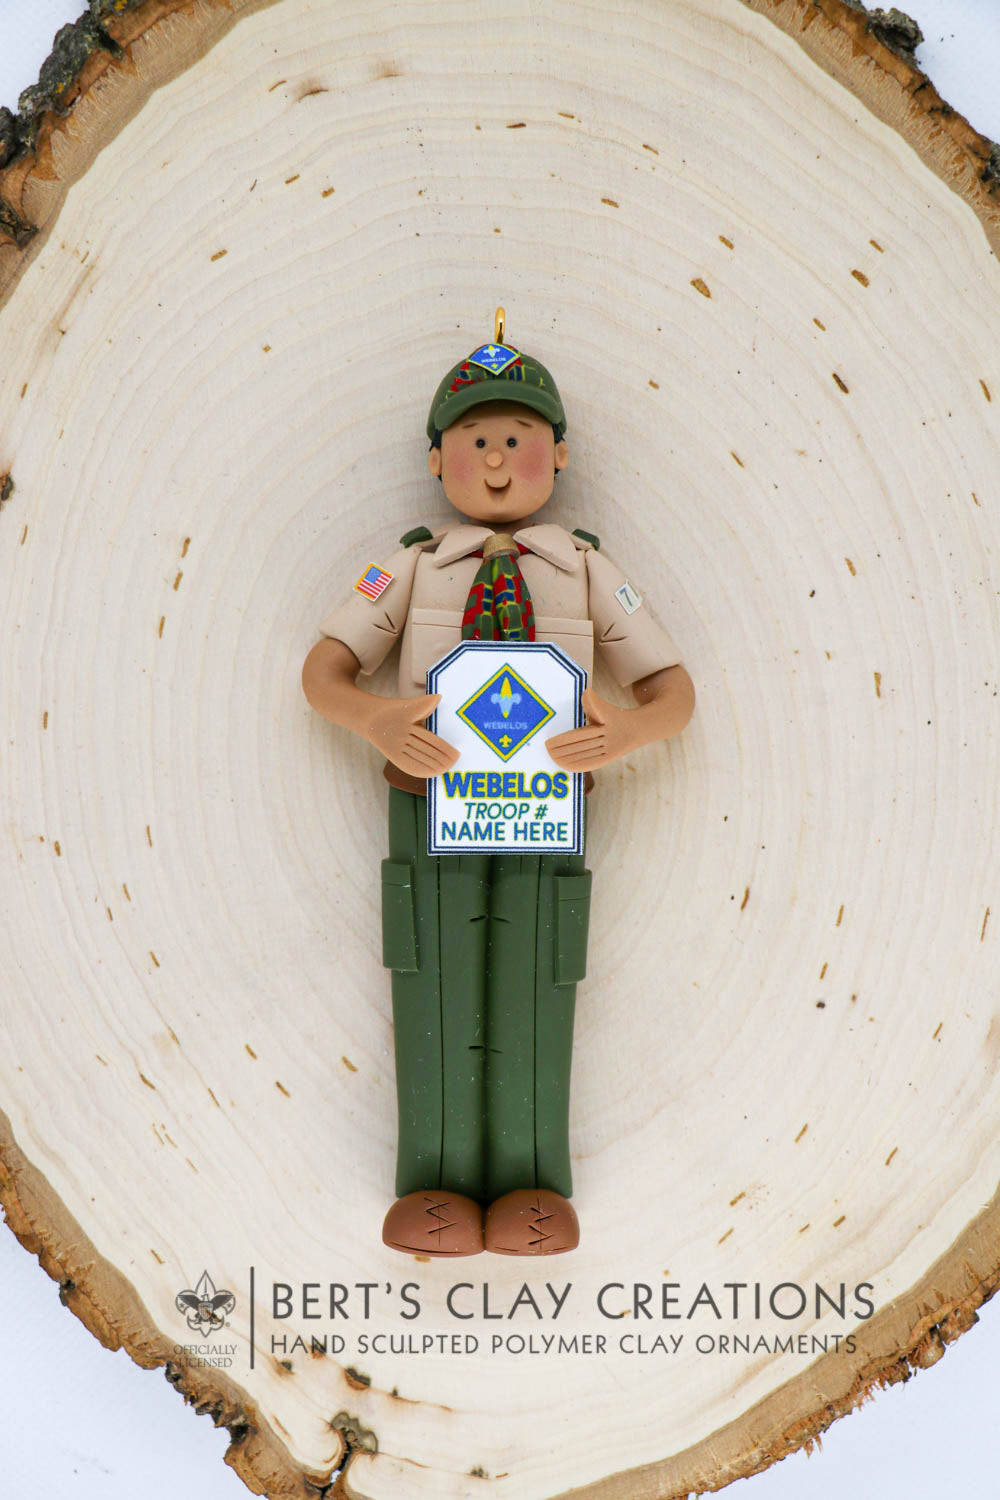 BSA - Webelos Ornament (Full Length Version) - Bert's Clay Creations